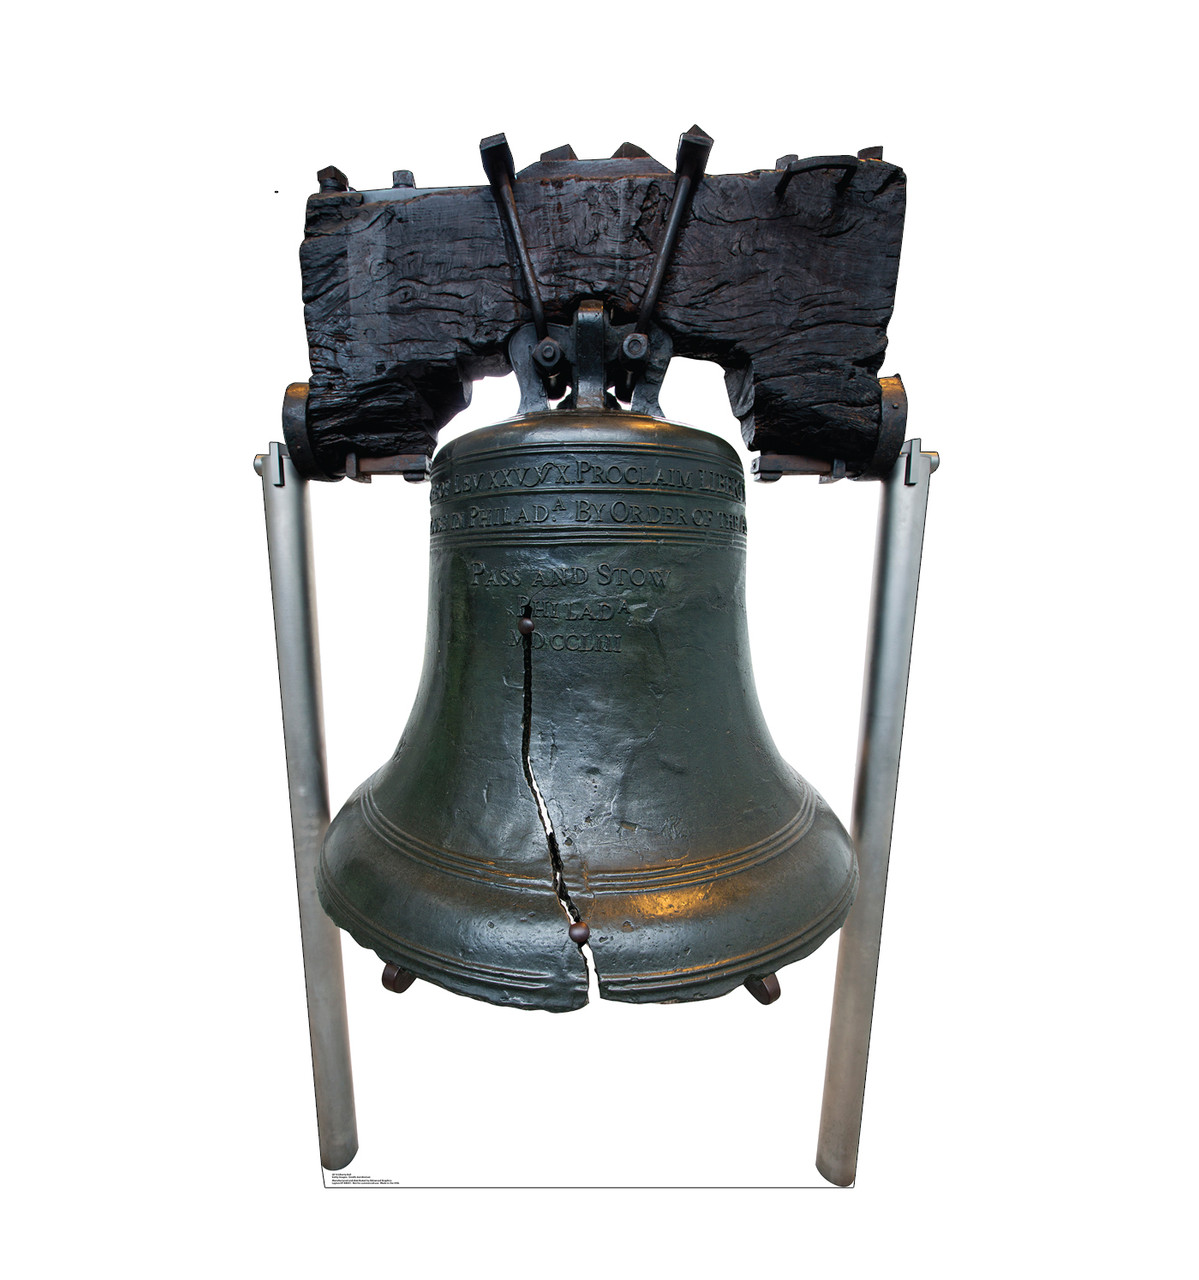 Life-size cardboard standee of the Liberty Bell.